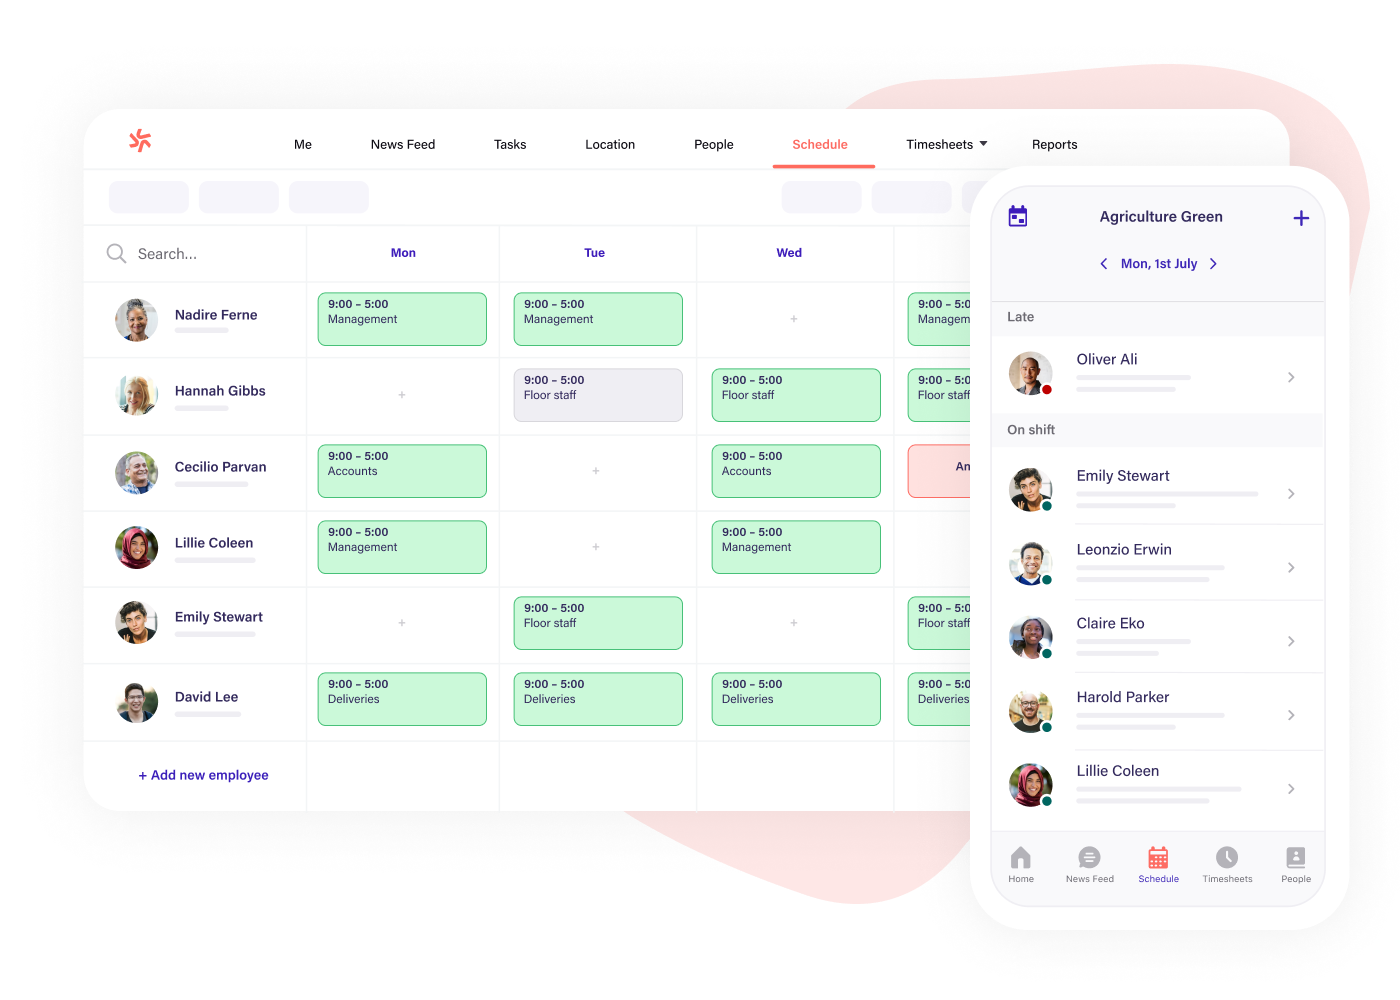 Scheduling software for agriculture